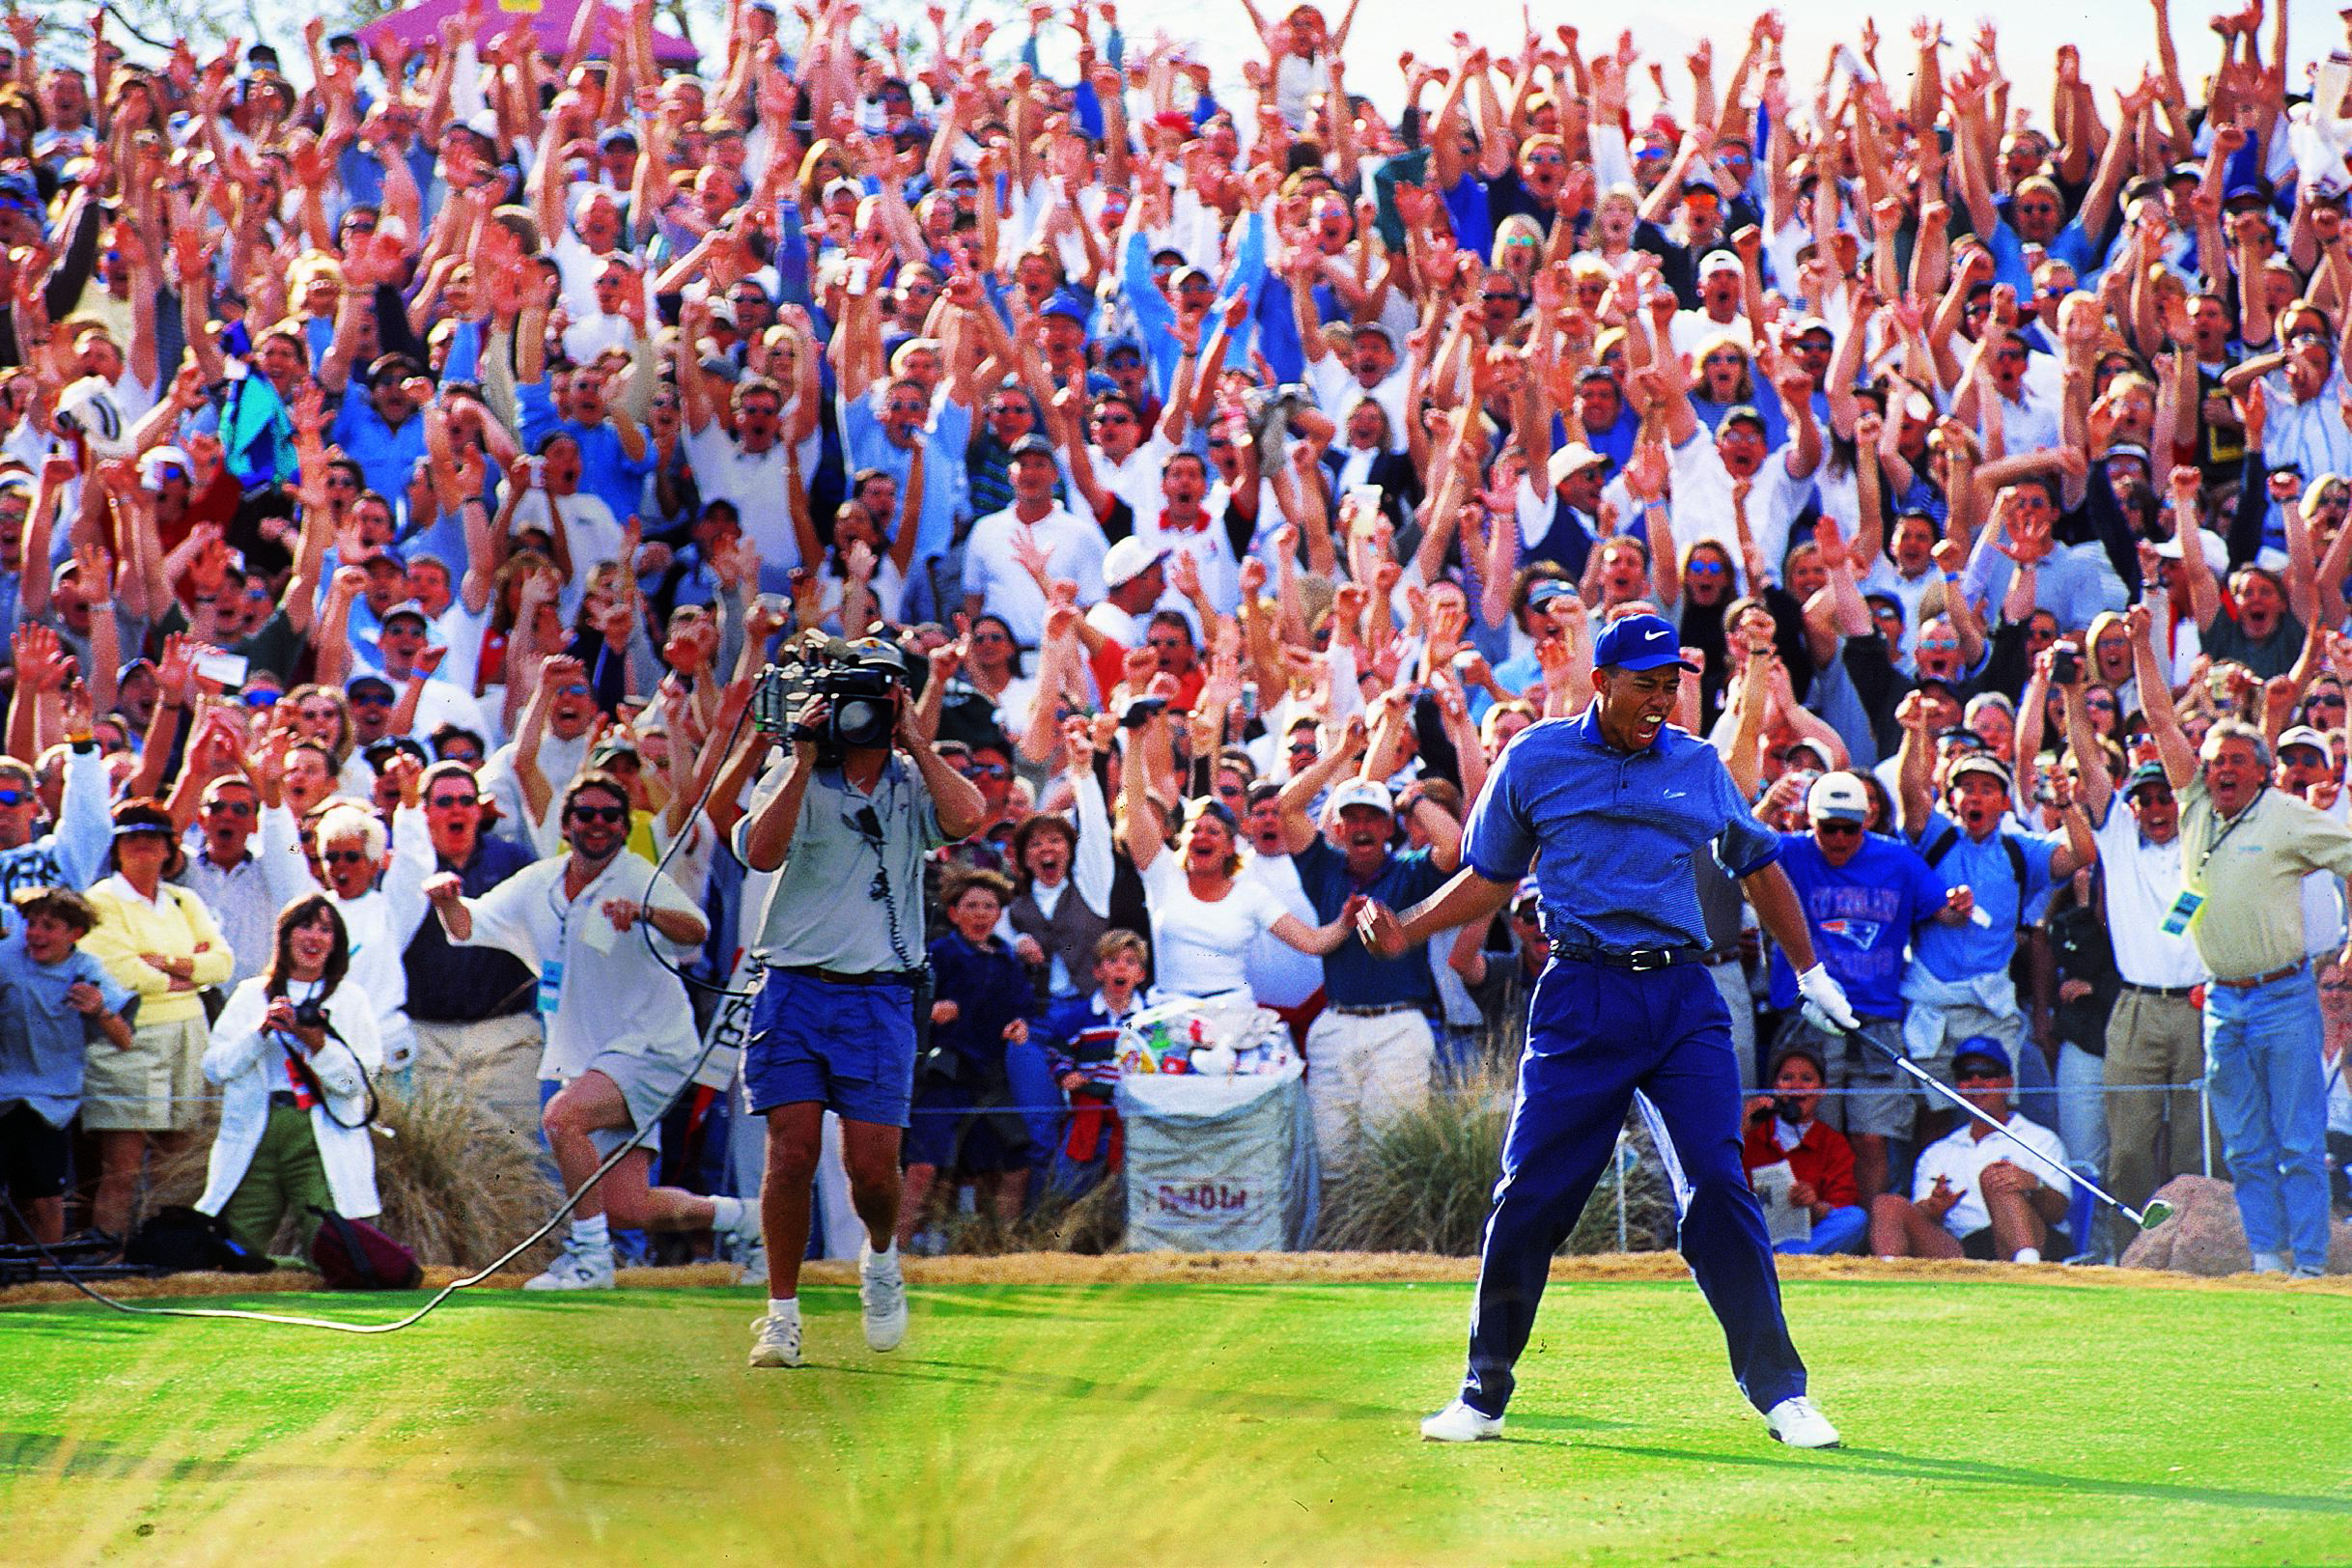 Tiger Woods celebrates after his hole-in-one at the 1997 Phoenix Open.